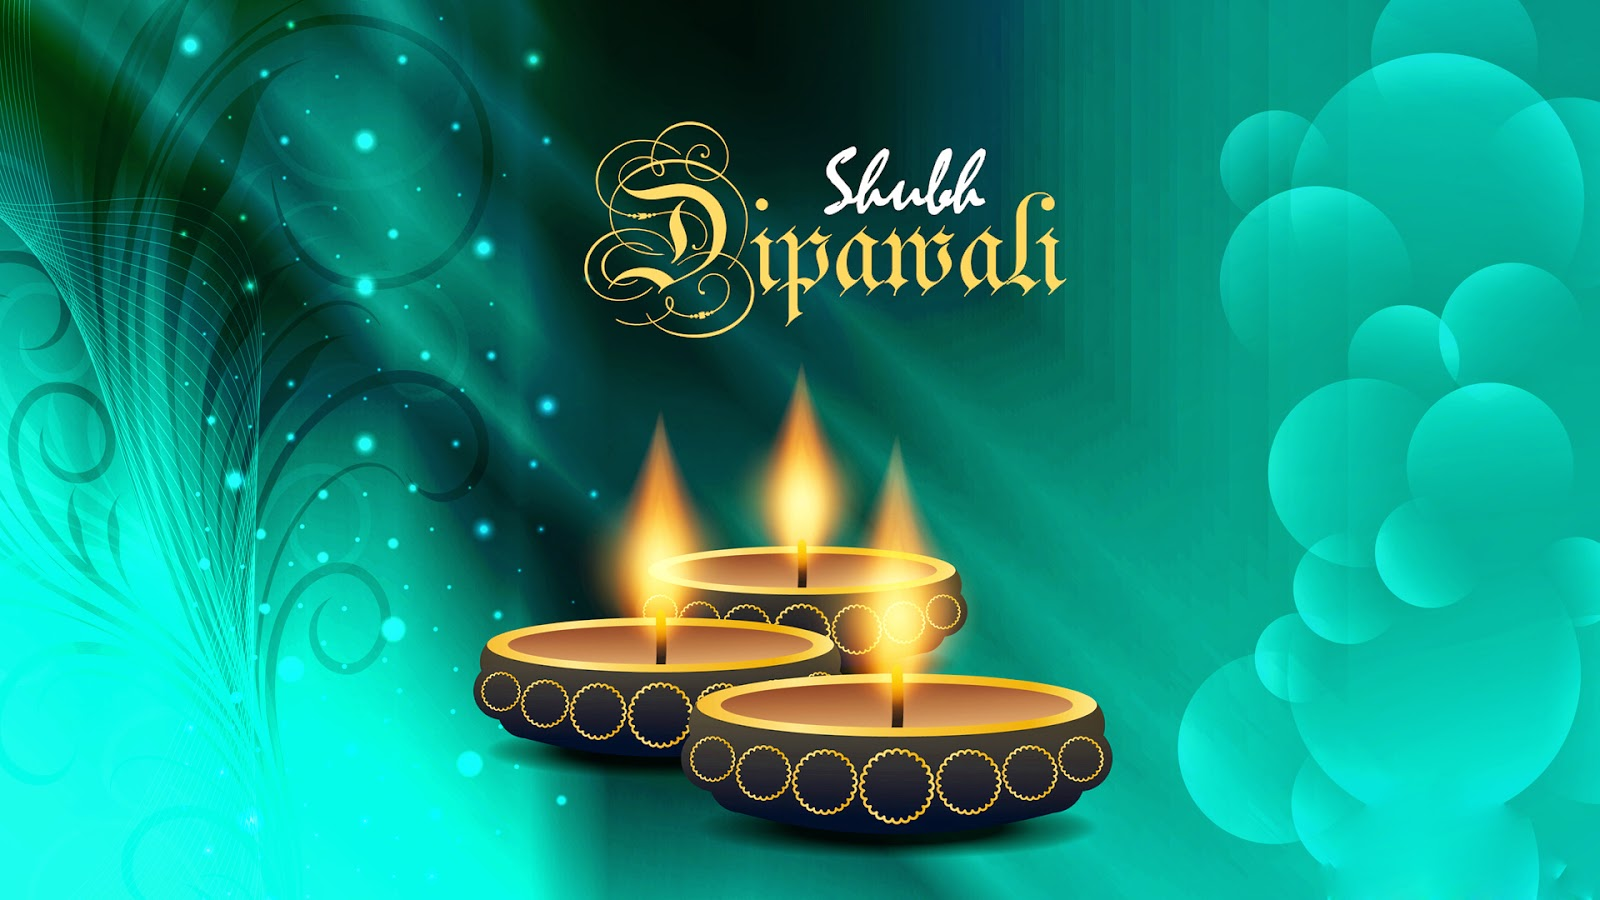 100 happy diwali hd wallpapers 2017 full hd free download 100 happy diwali hd wallpapers 2017 full hd free download m4hsunfo